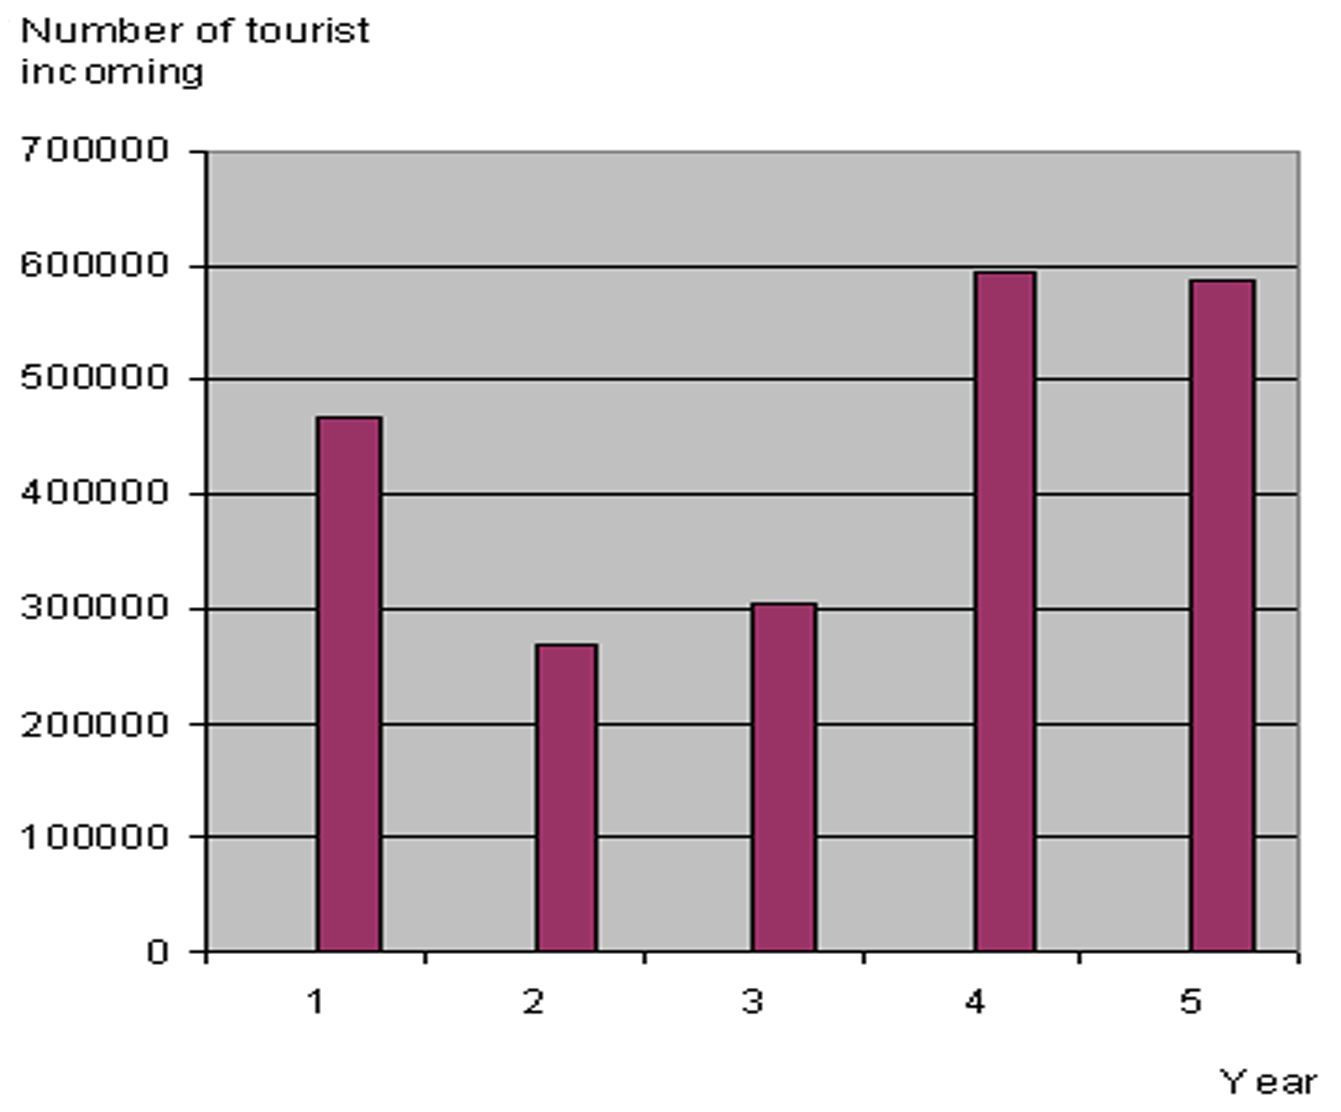 tourism in present status and future prospects statistics of tourist incoming in